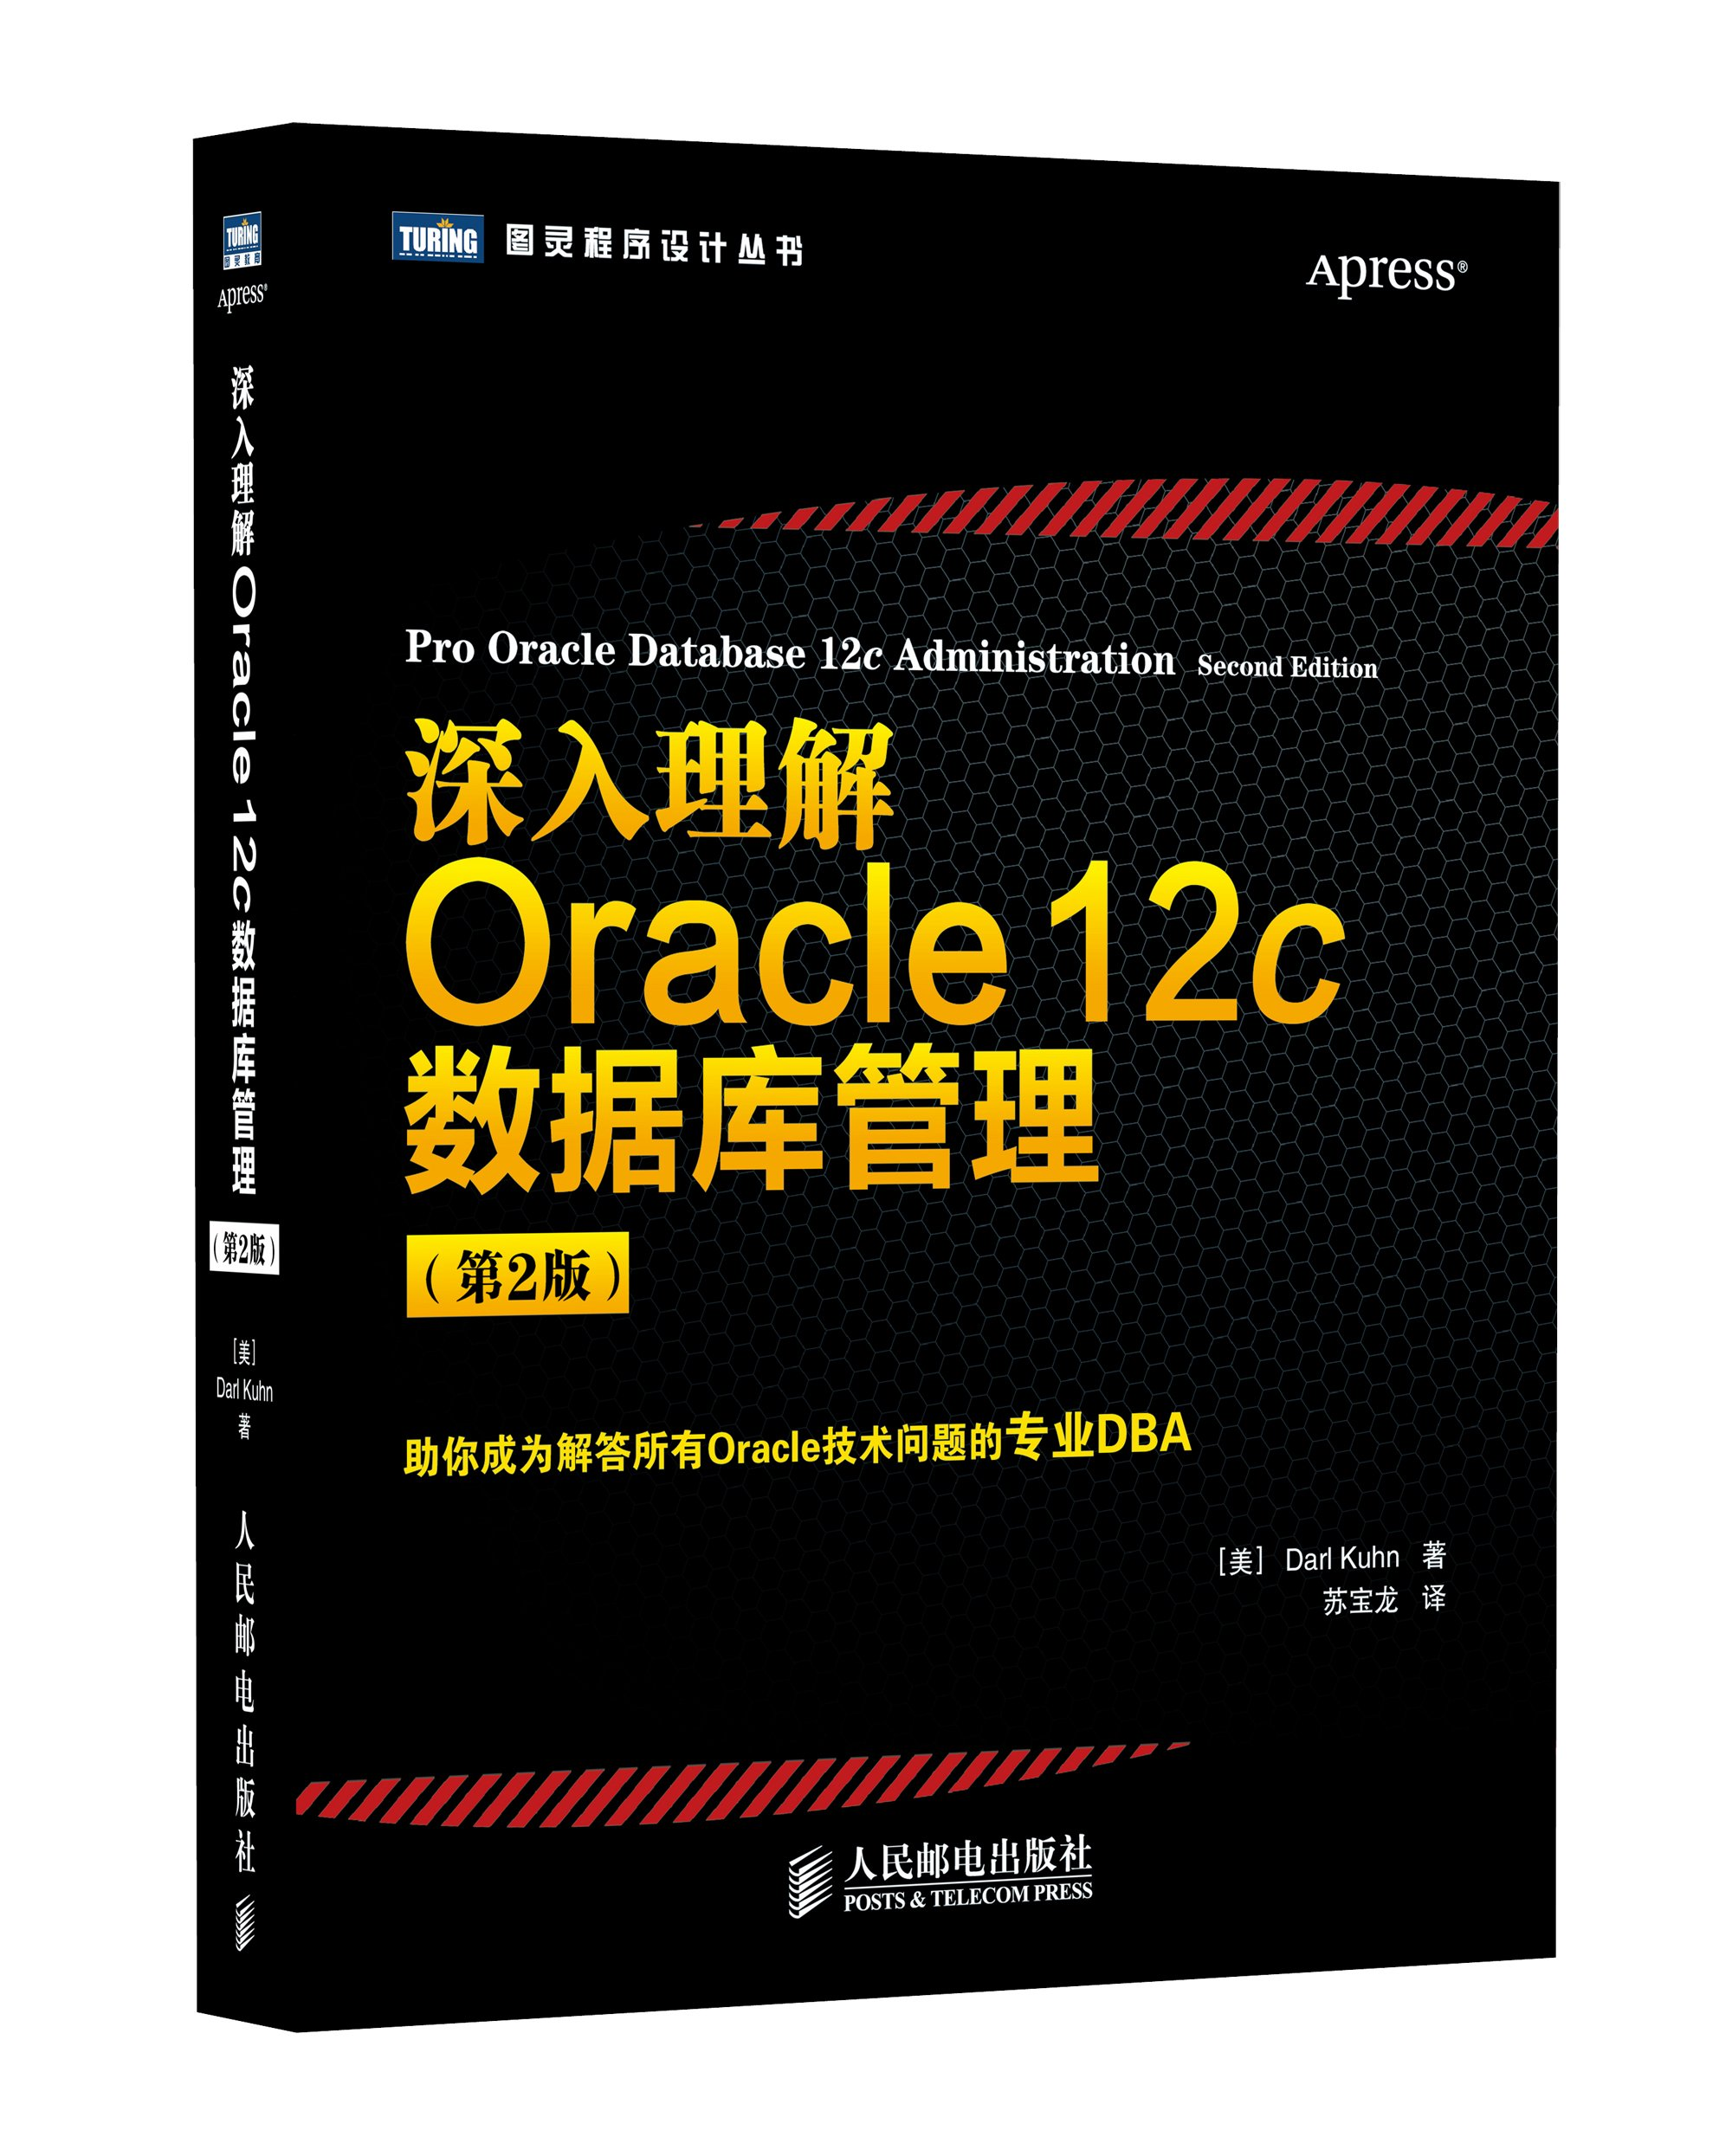 Download In-depth understanding of Oracle 12c database management(Chinese Edition) ebook